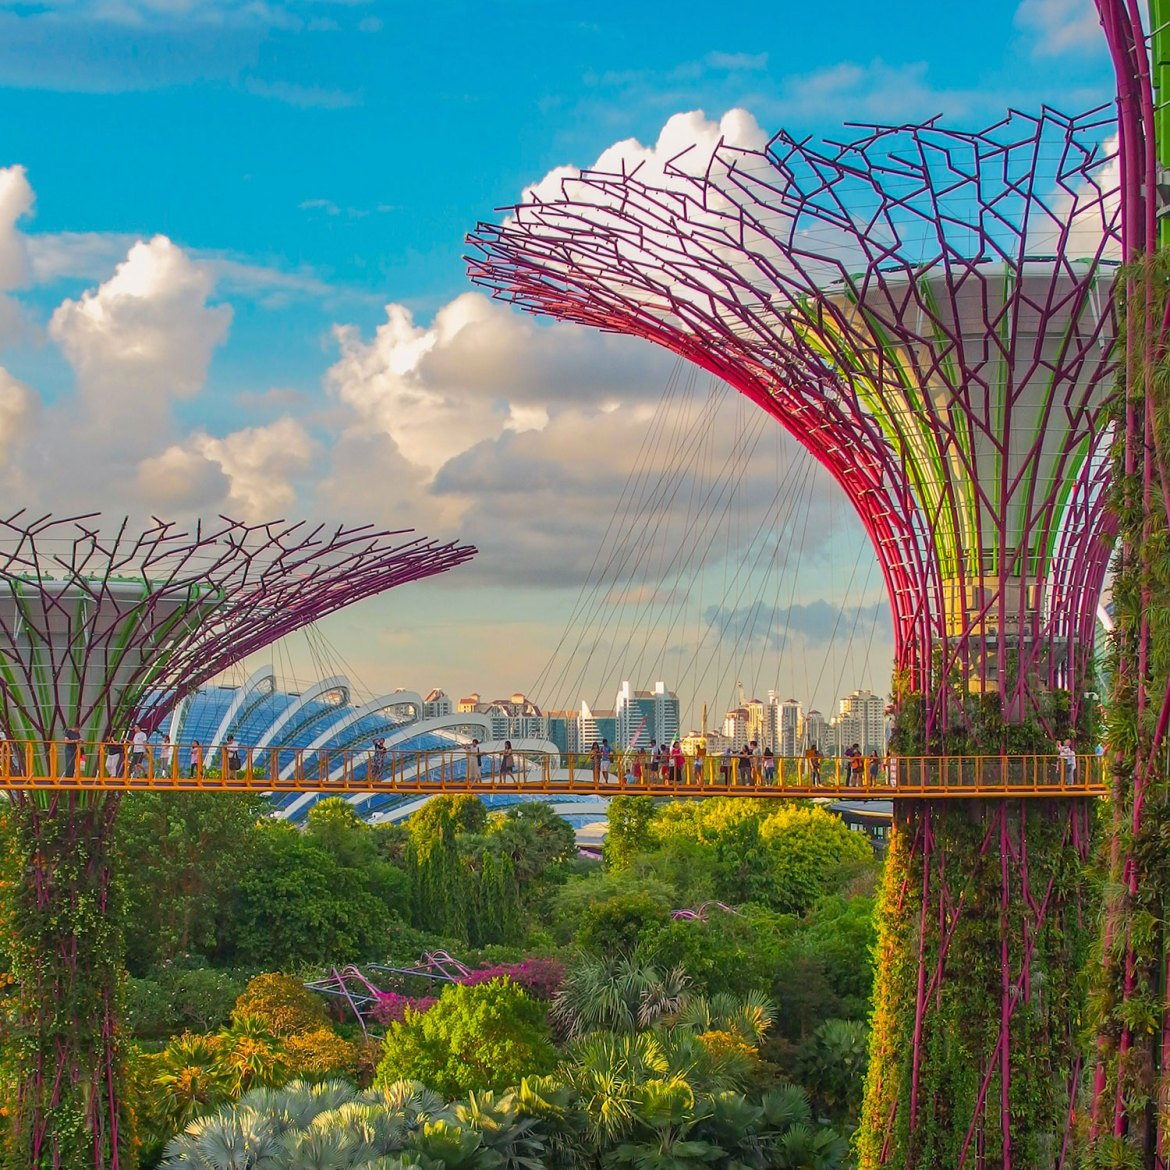 Super Tree Grove at Gardens by the Bay - photo: Coleen Rivas